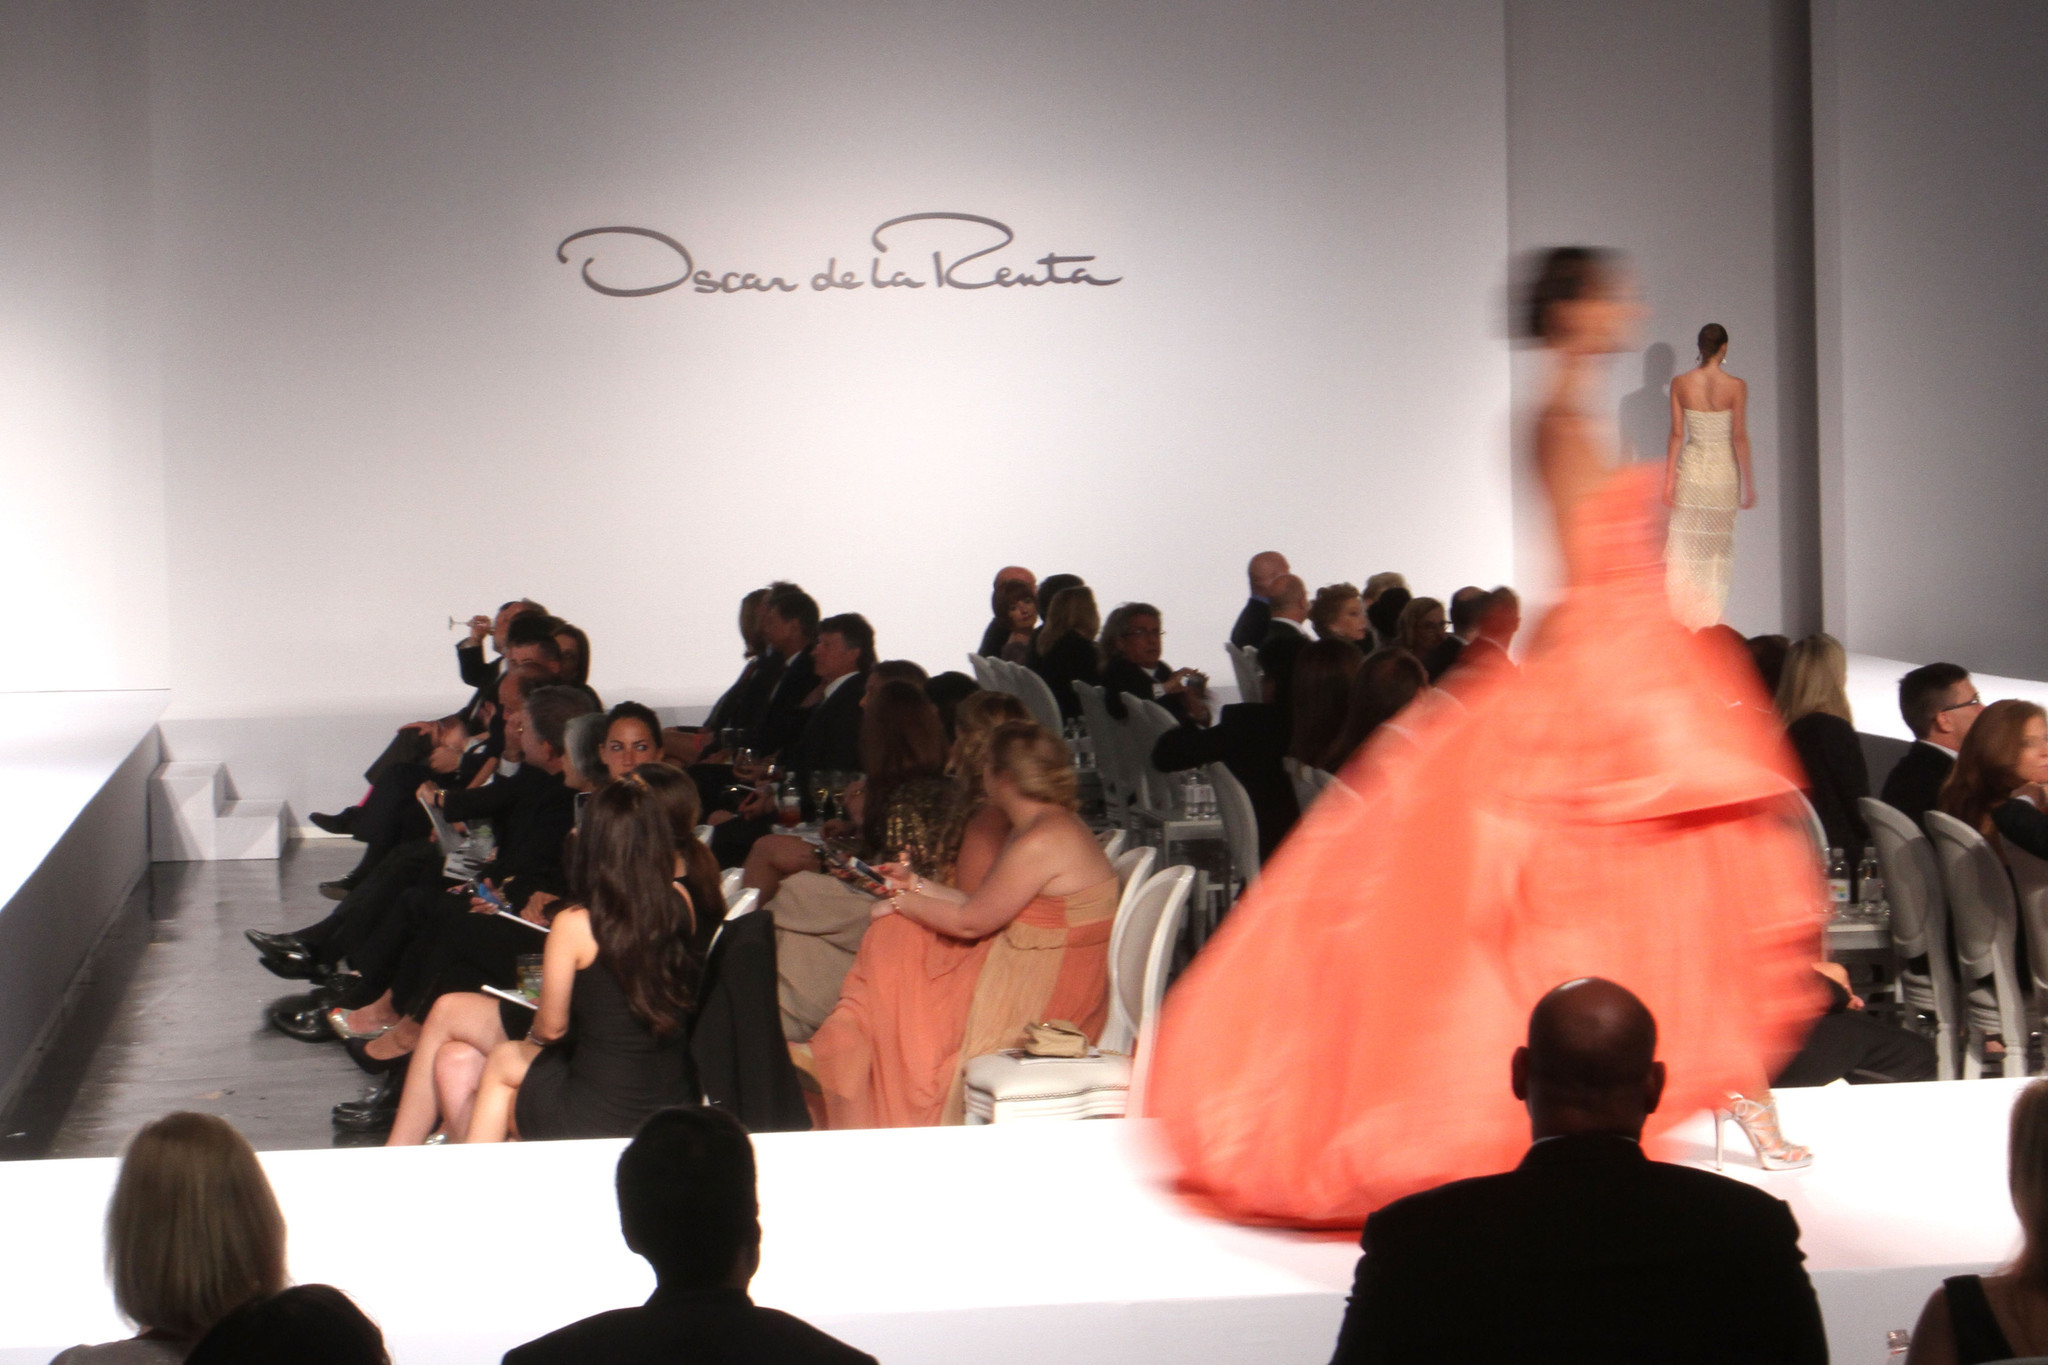 Oscar de la Renta fashion charity show in Miami - Designed For A Cure 2014 Benefiting Sylvester Comprehensive Cancer Center